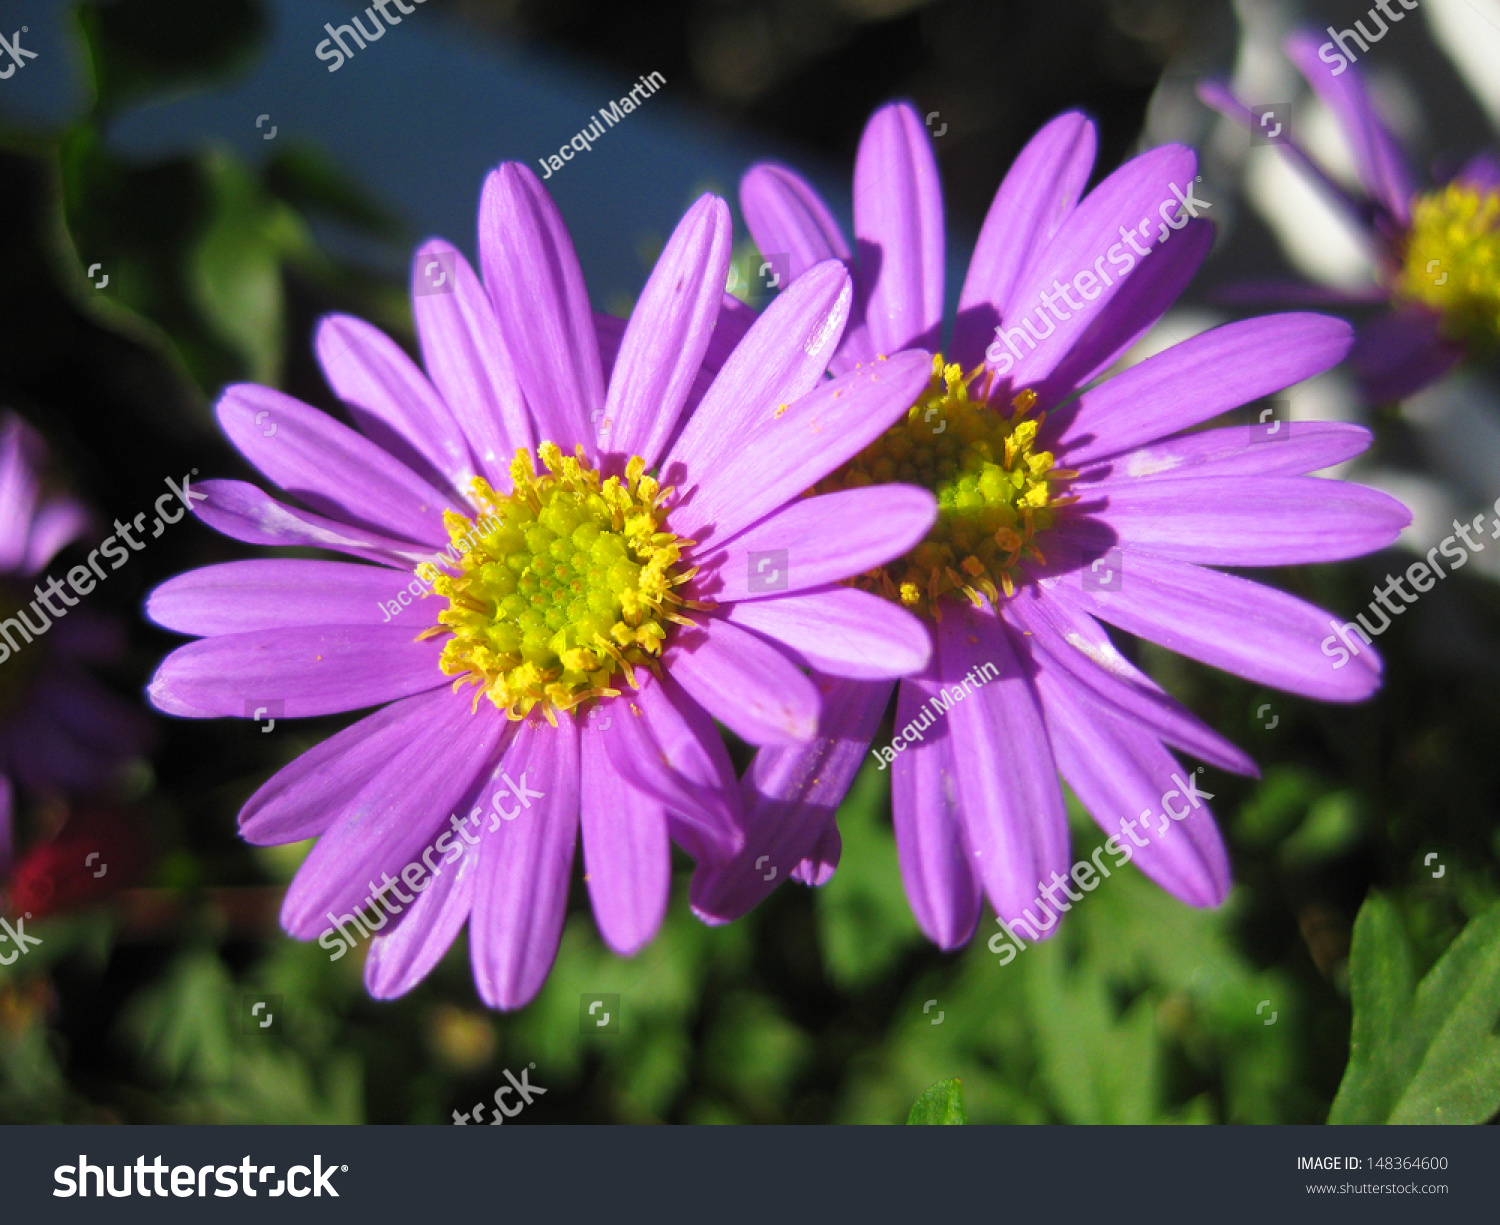 Beautiful purple daisy flowers sunlight green stock photo edit now beautiful purple daisy flowers in sunlight with green foliage in background izmirmasajfo